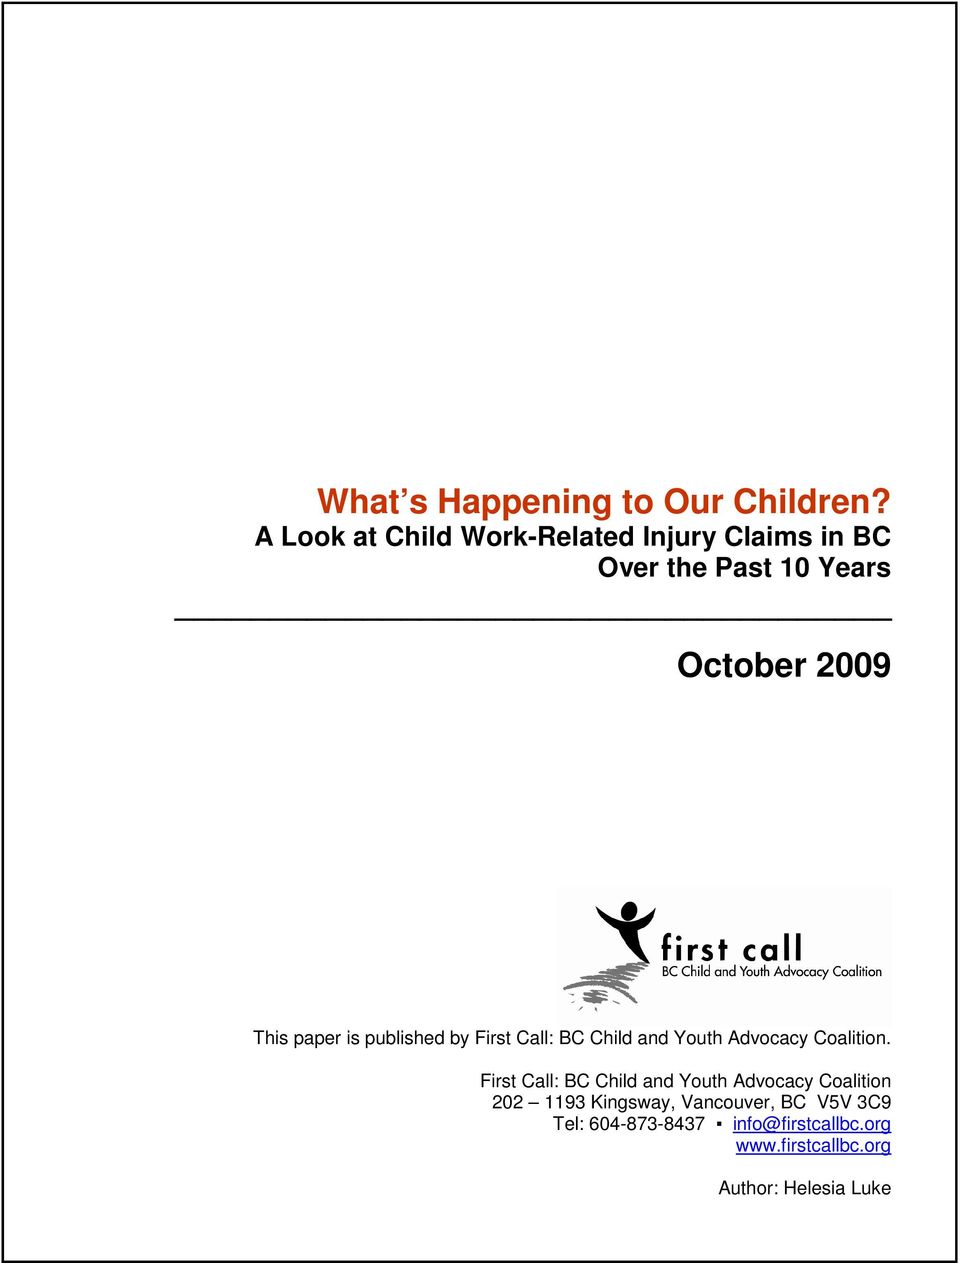 paper is published by First Call: BC Child and Youth Advocacy Coalition.